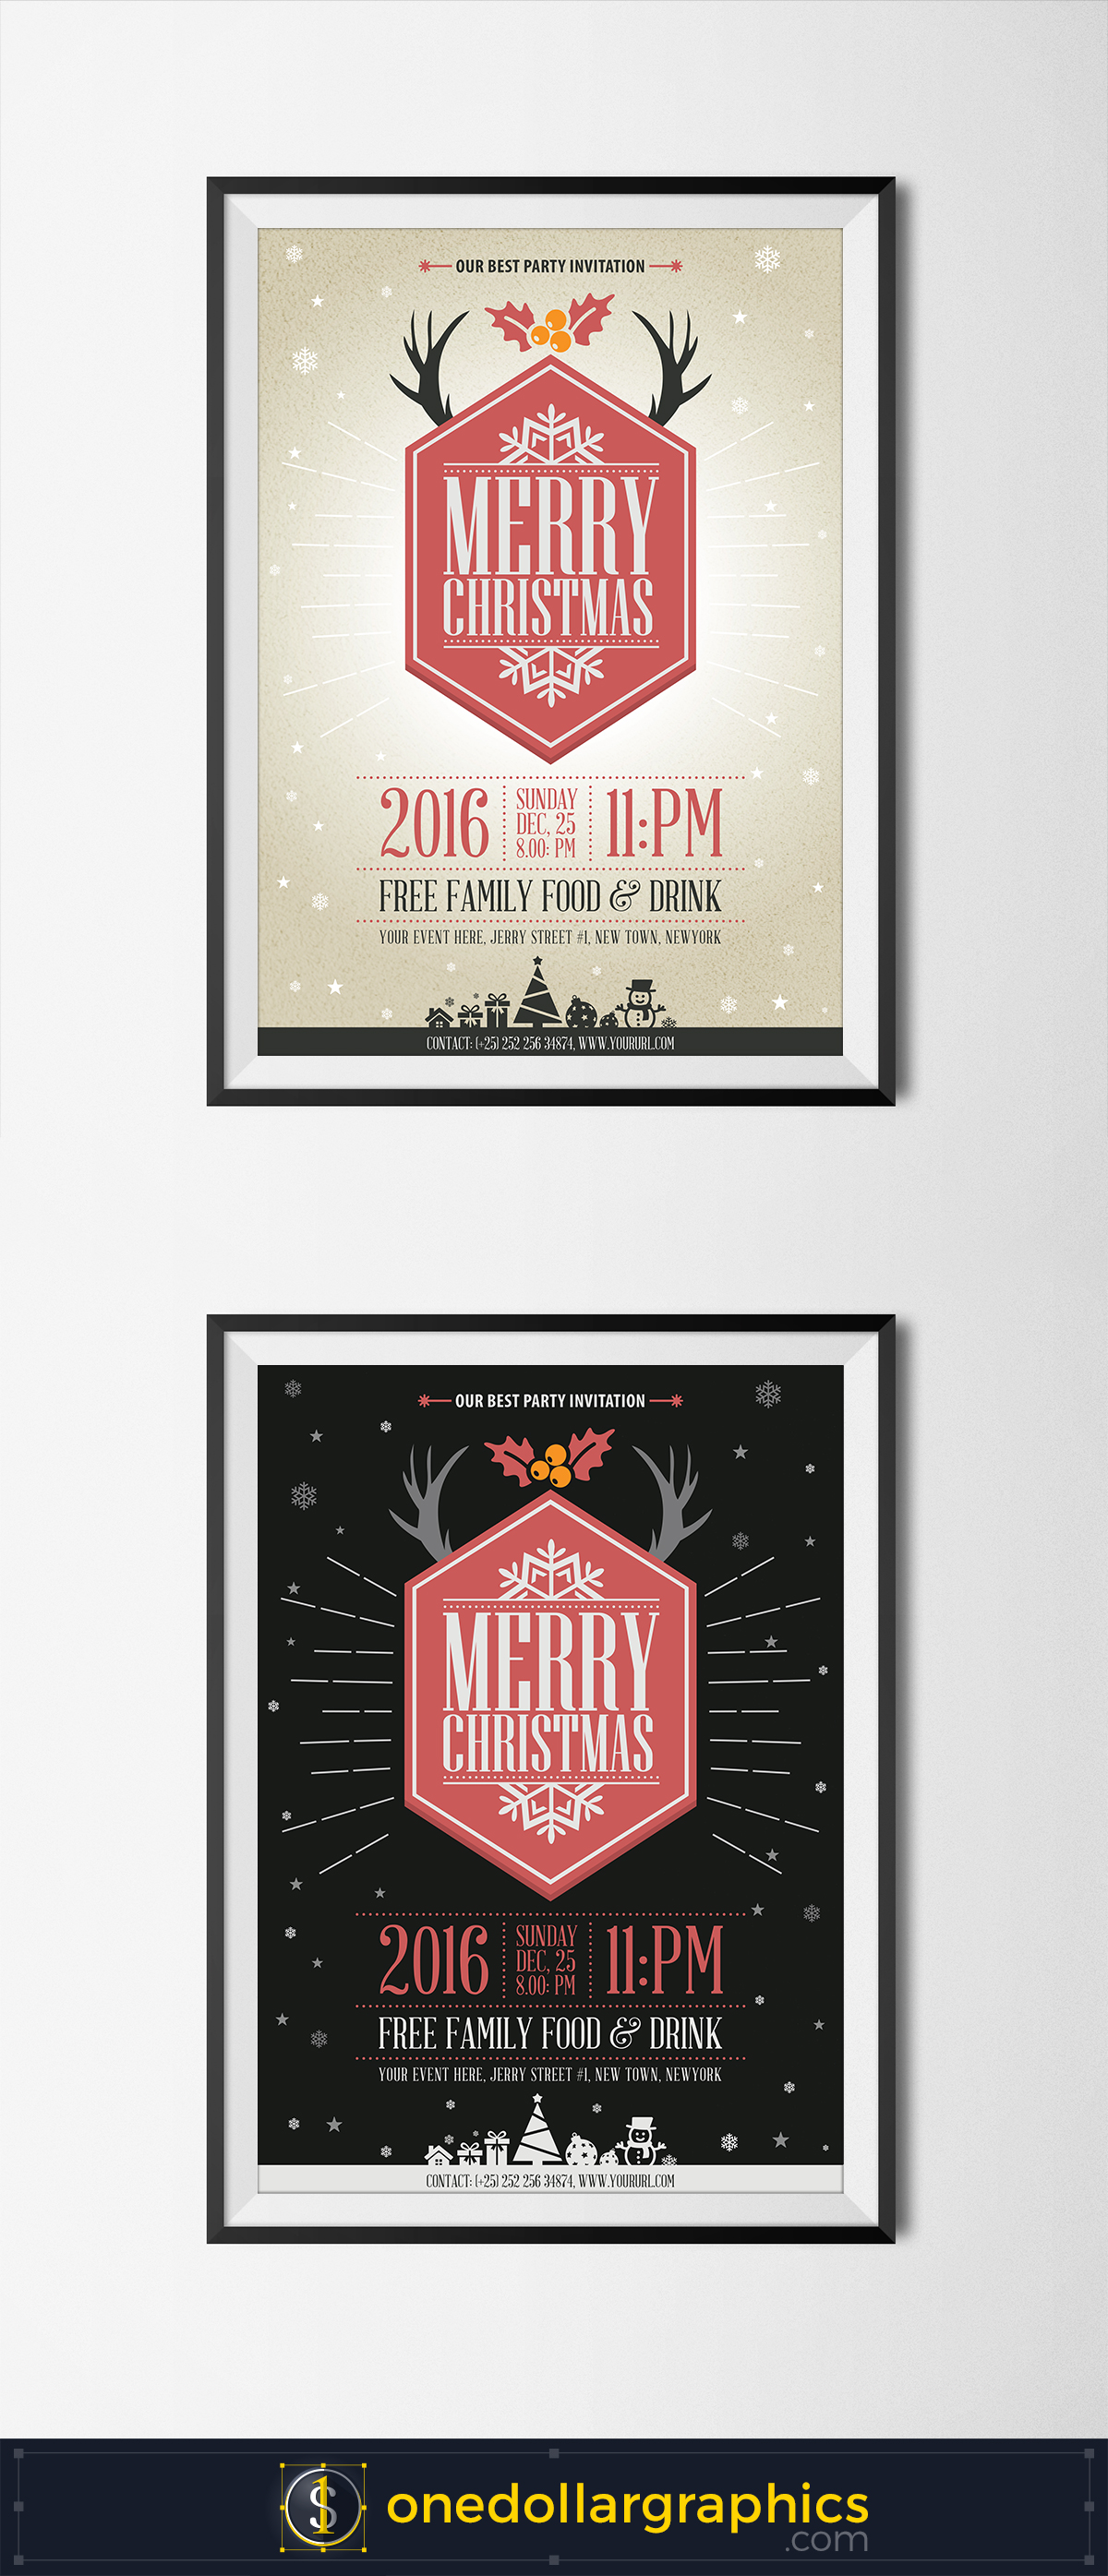 vector vintage party christmas flyer template design vintage christmas flyer template design